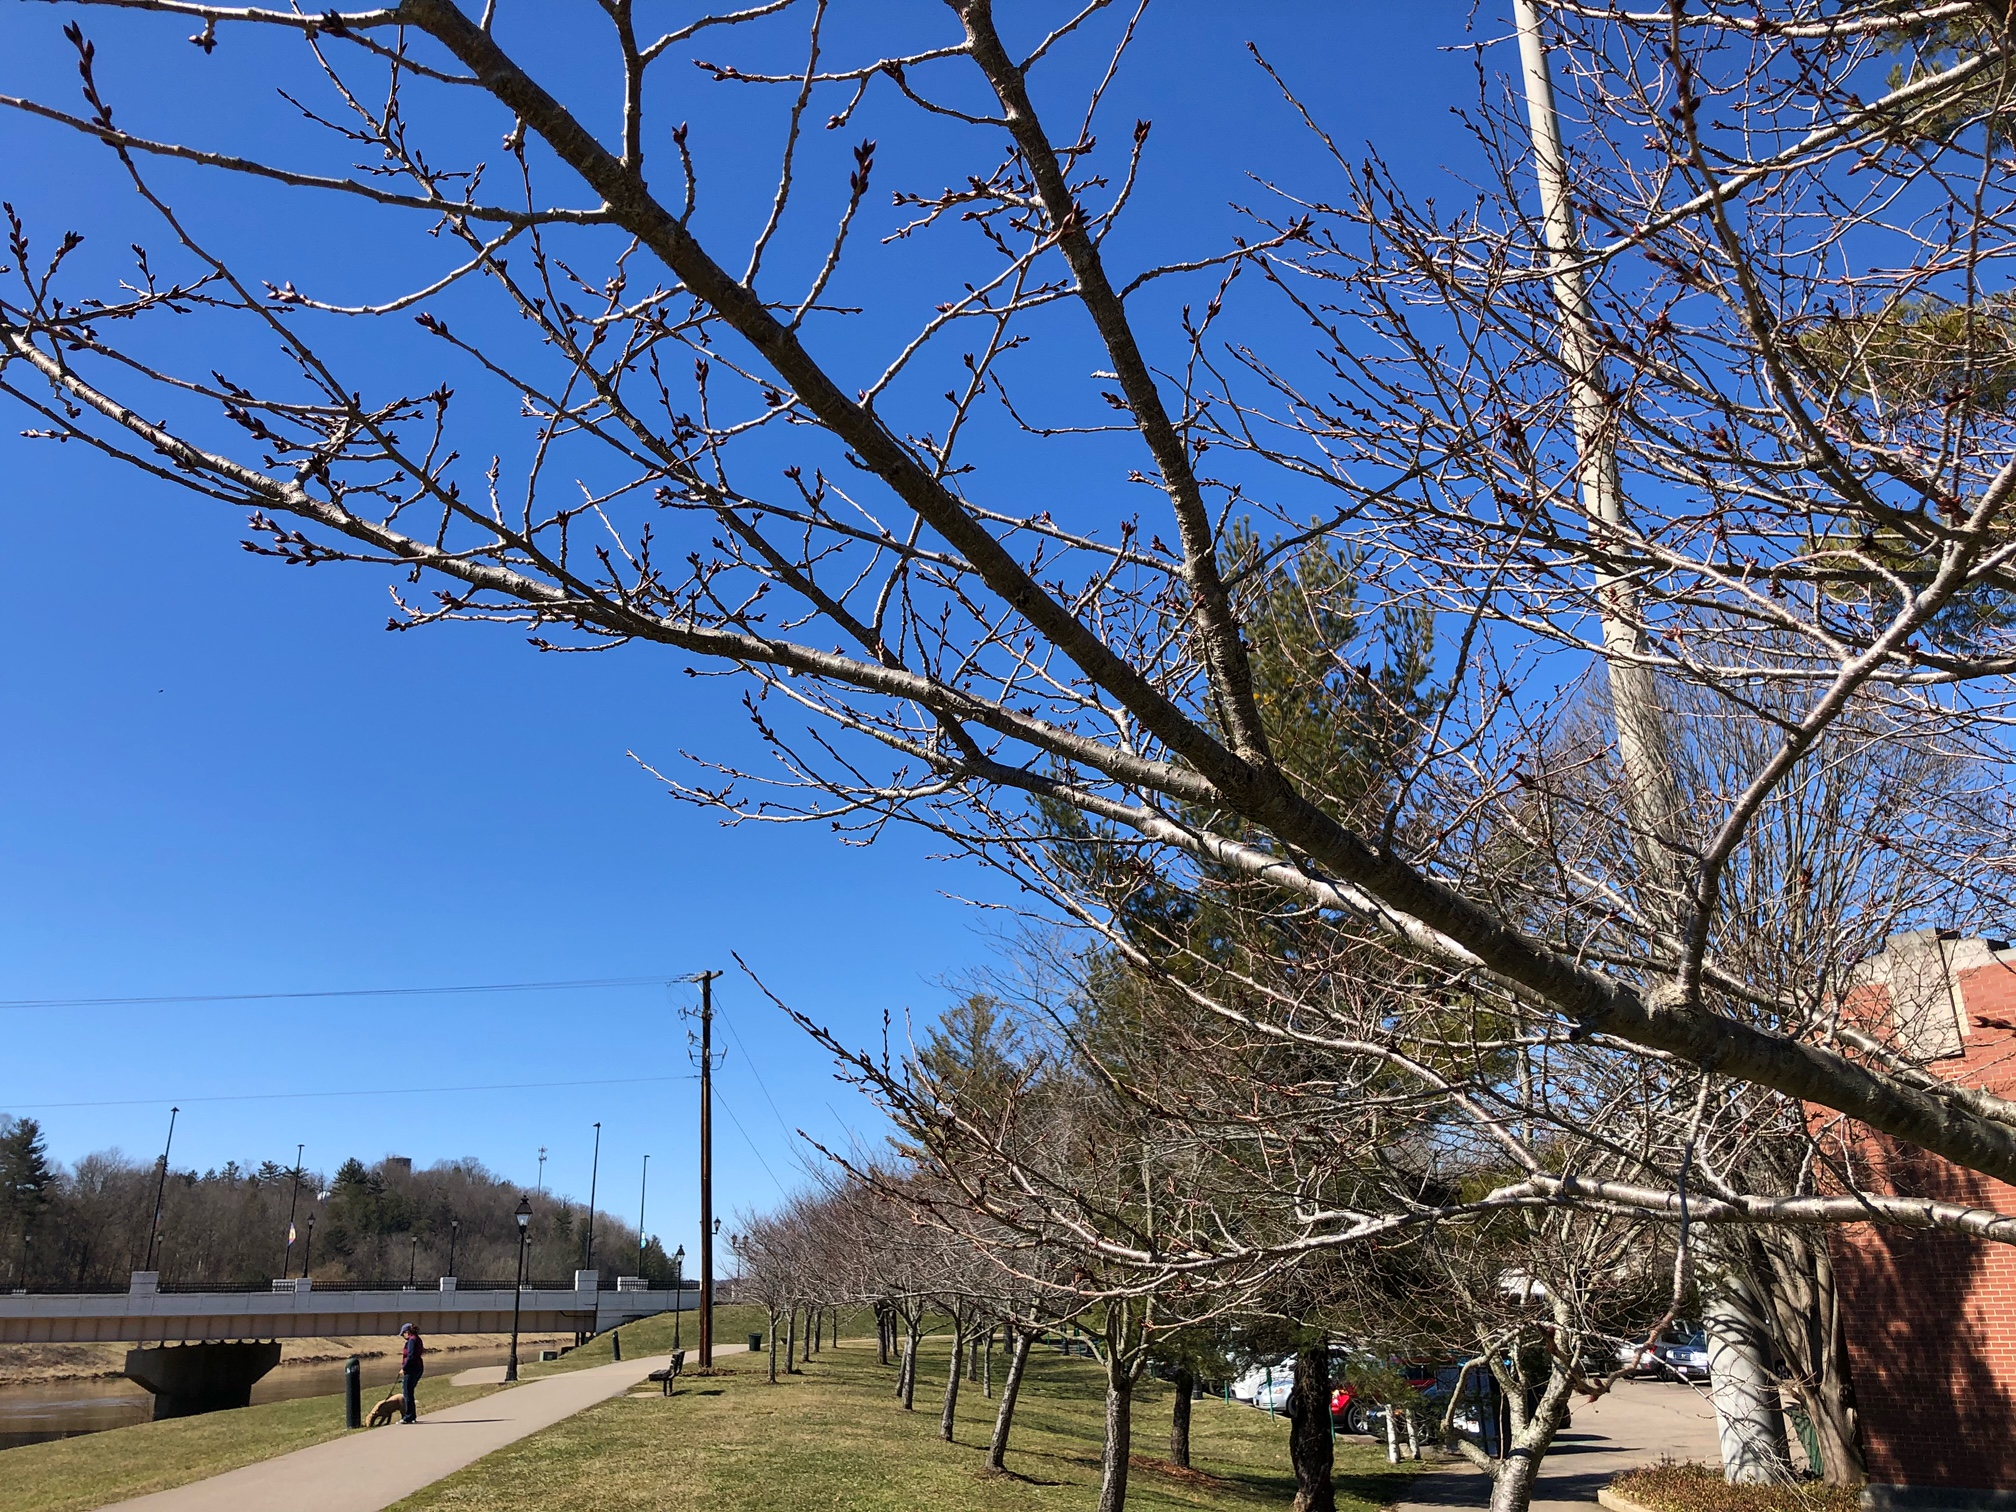 Bare cherry trees on March 2nd along Hocking river